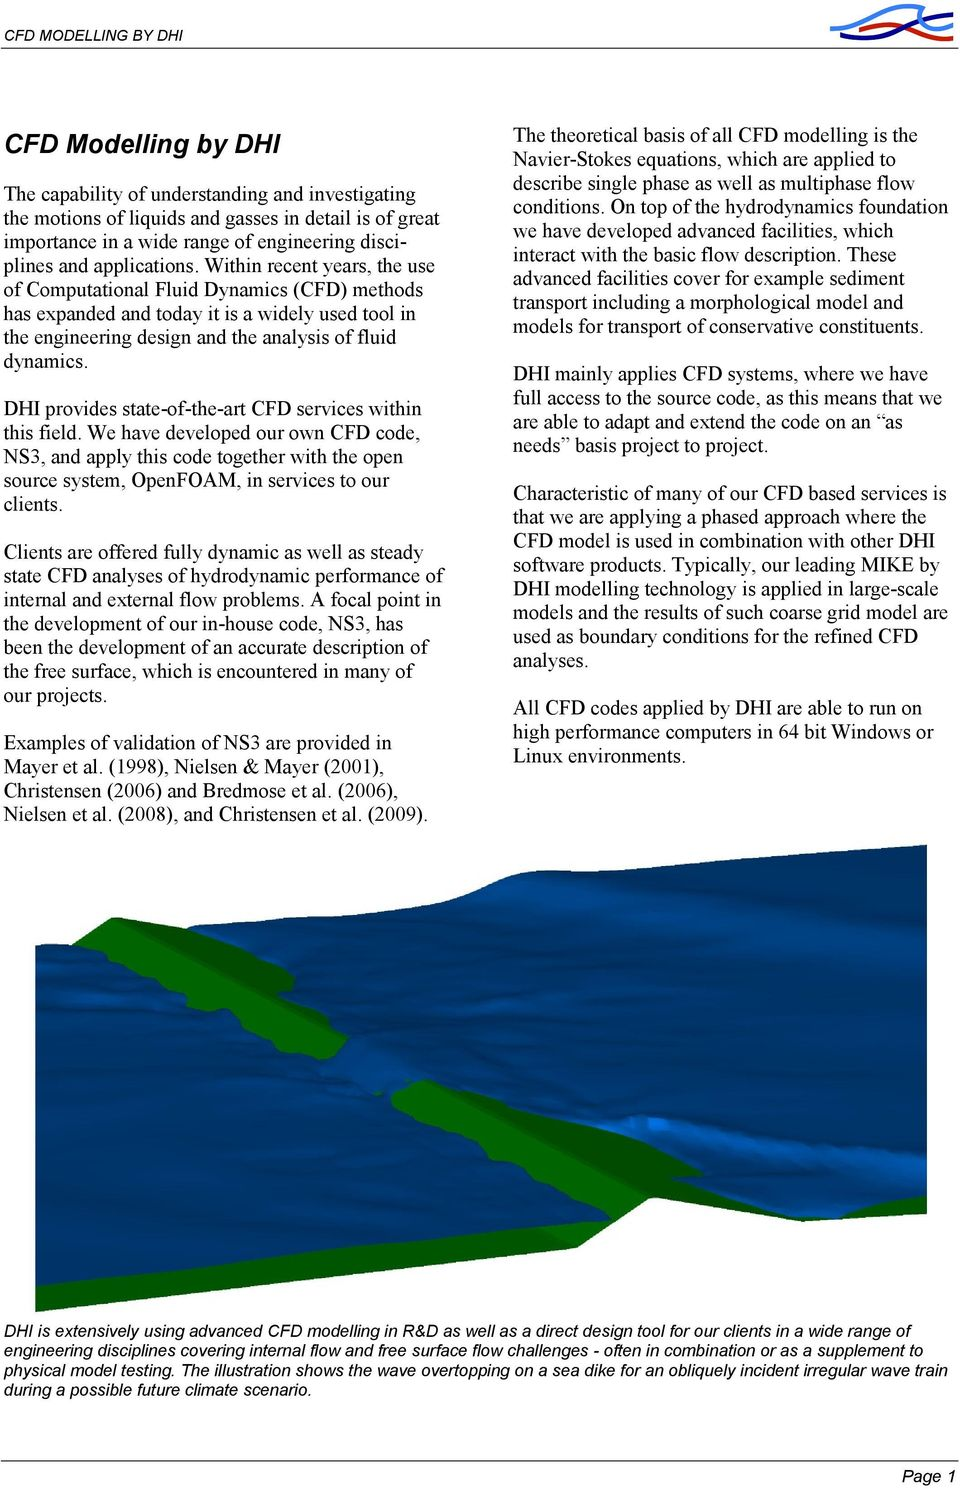 CFD MODELLING BY DHI  Statement of Qualifications - PDF